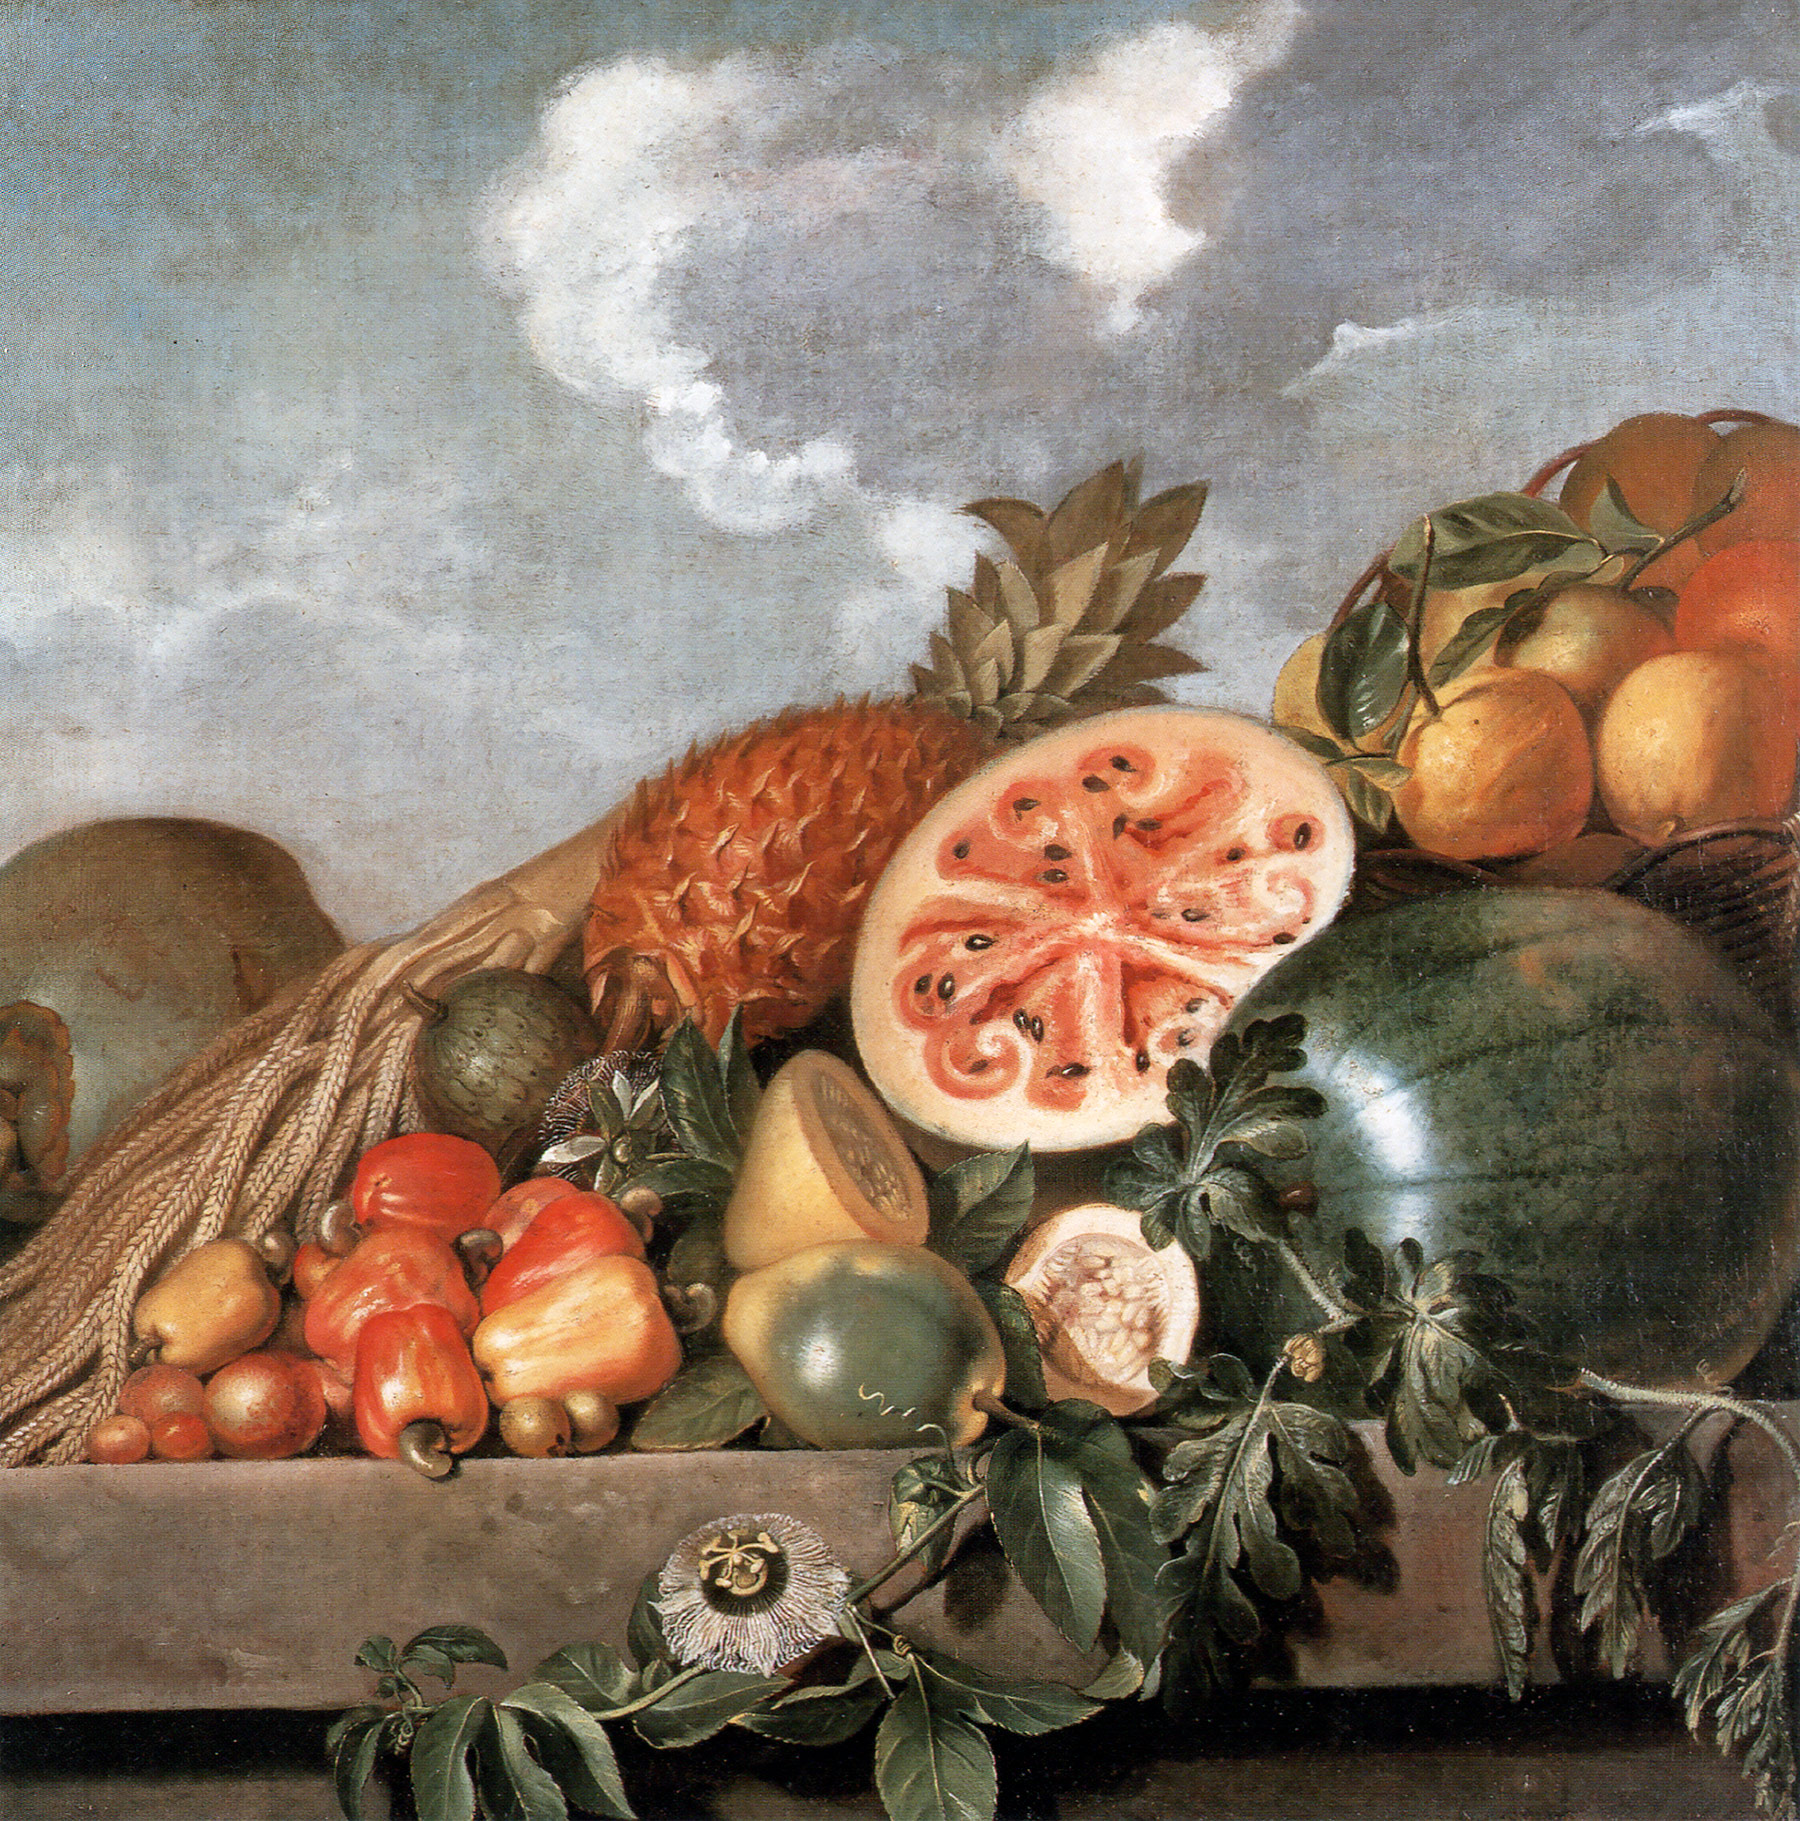 Fil:Albert Eckhout 1610-1666 Brazilian fruits.jpg